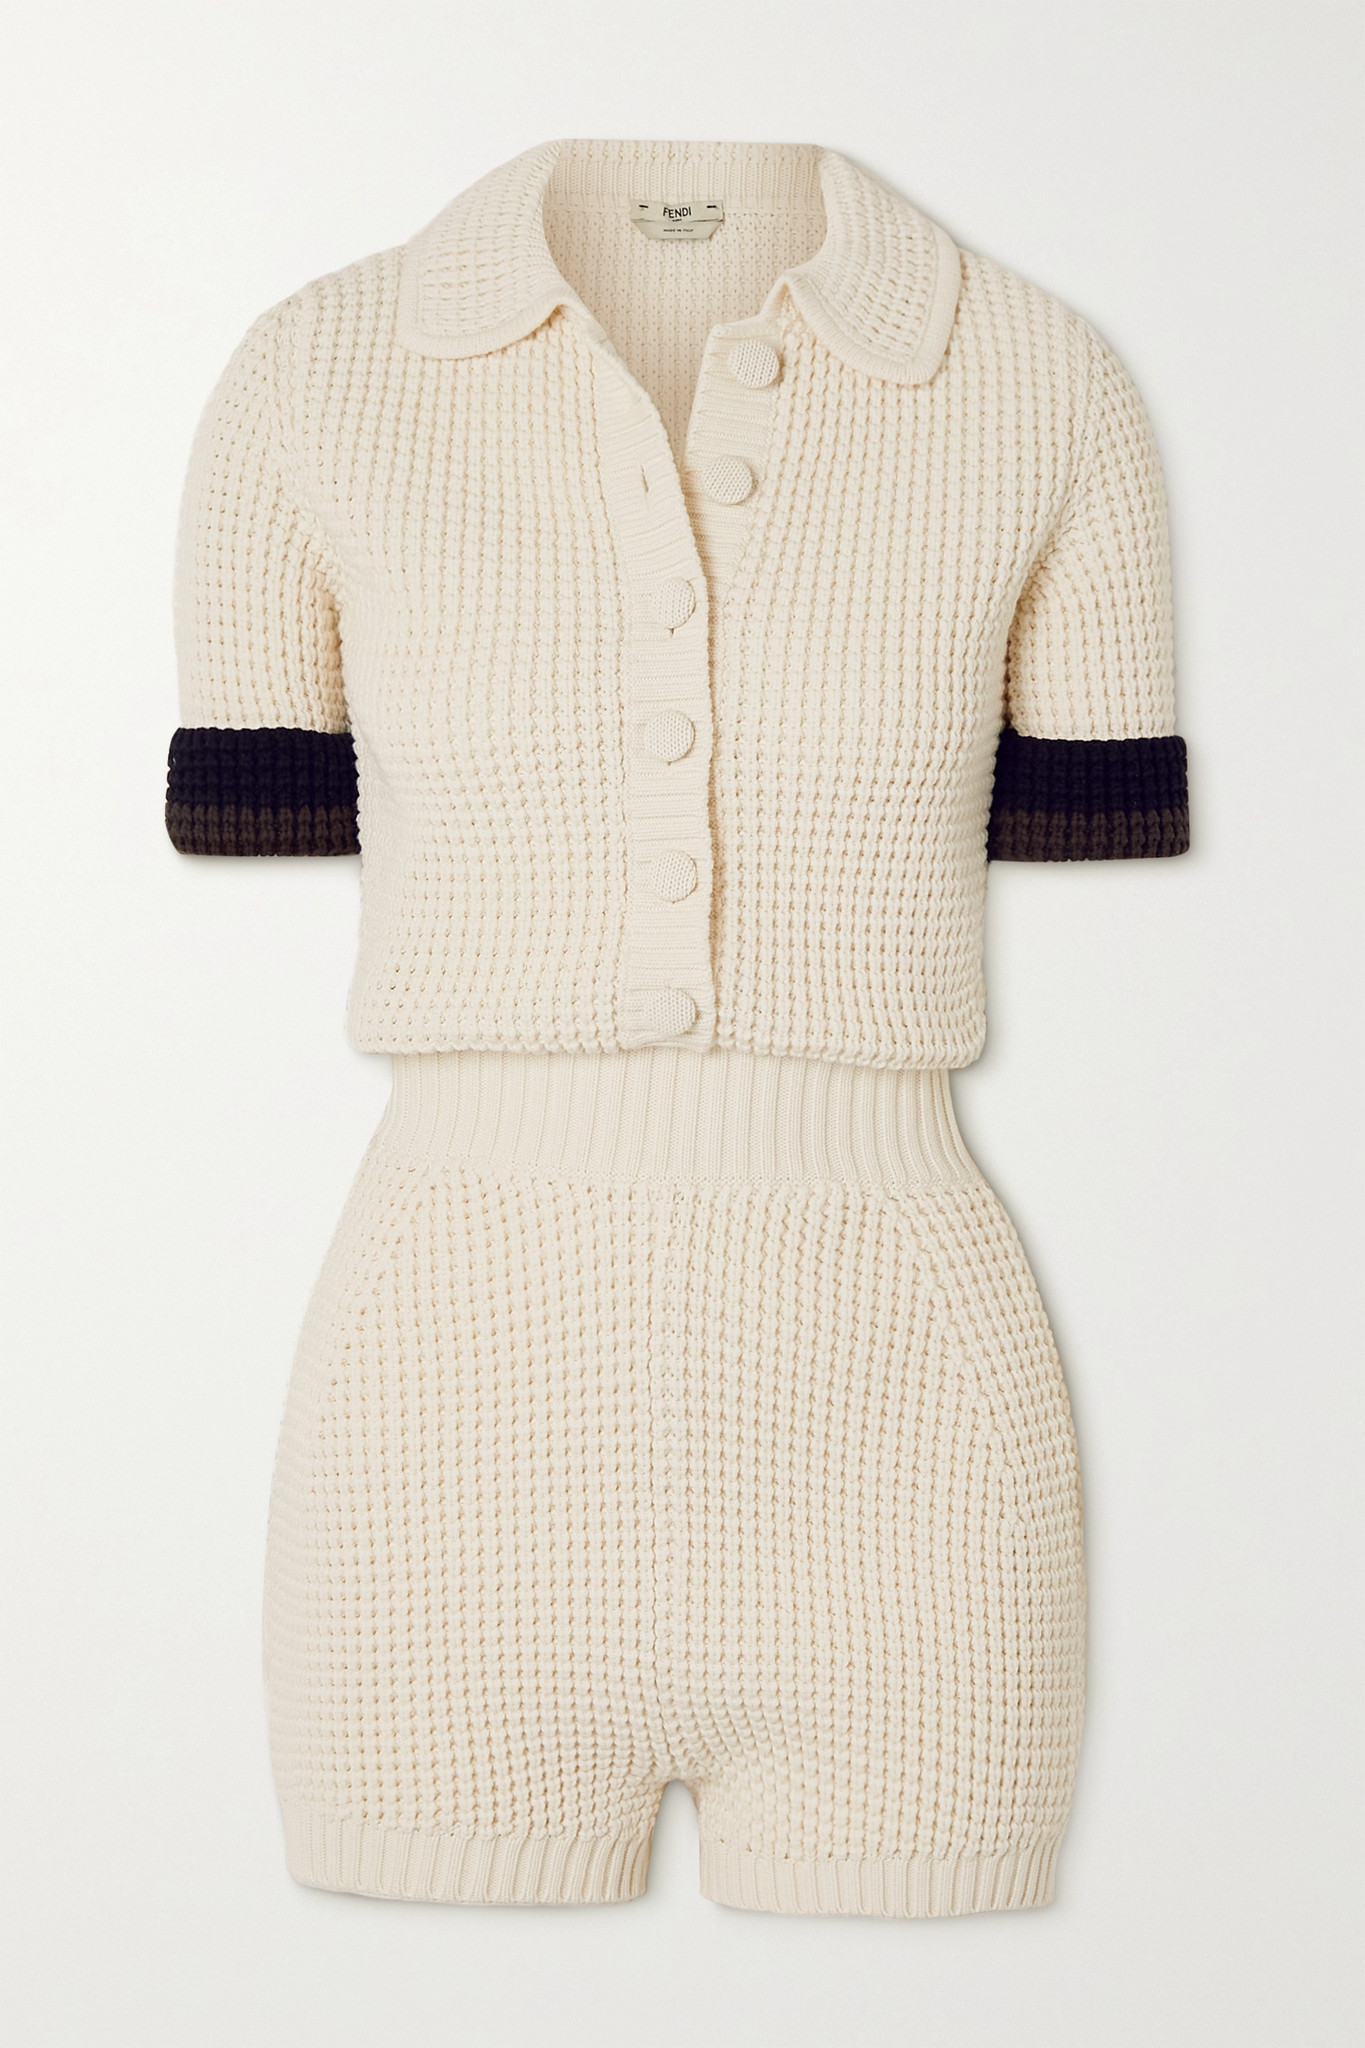 FENDI - Striped Knitted Playsuit - White - IT44